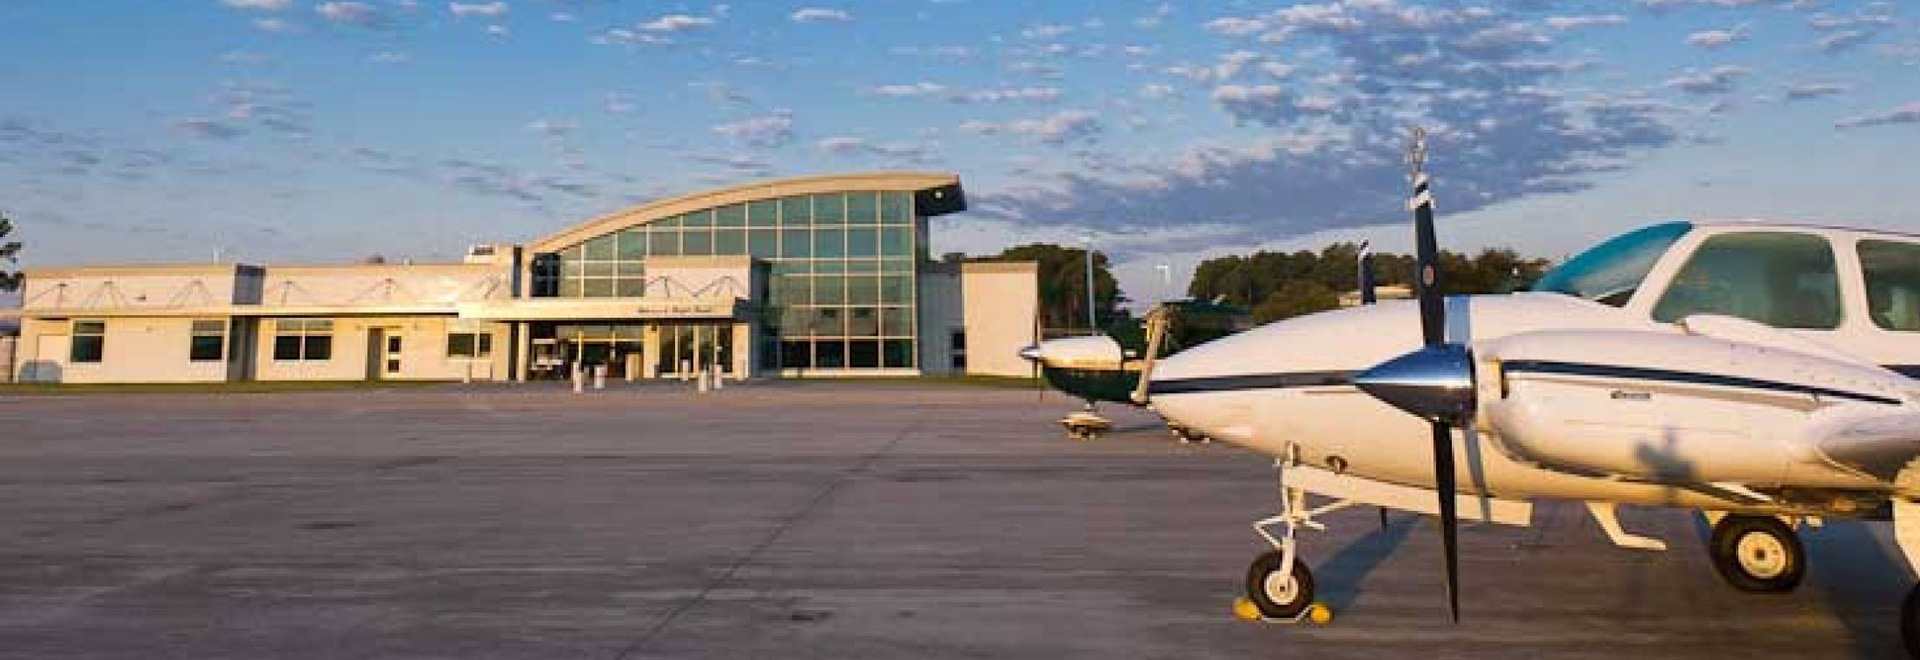 Beach Aviation Services occupies a purpose-built 10,000 sq ft terminal at Myrtle Beach International Airport. The county-operated location in the heart of South Carolina's golf country, is seeing s...